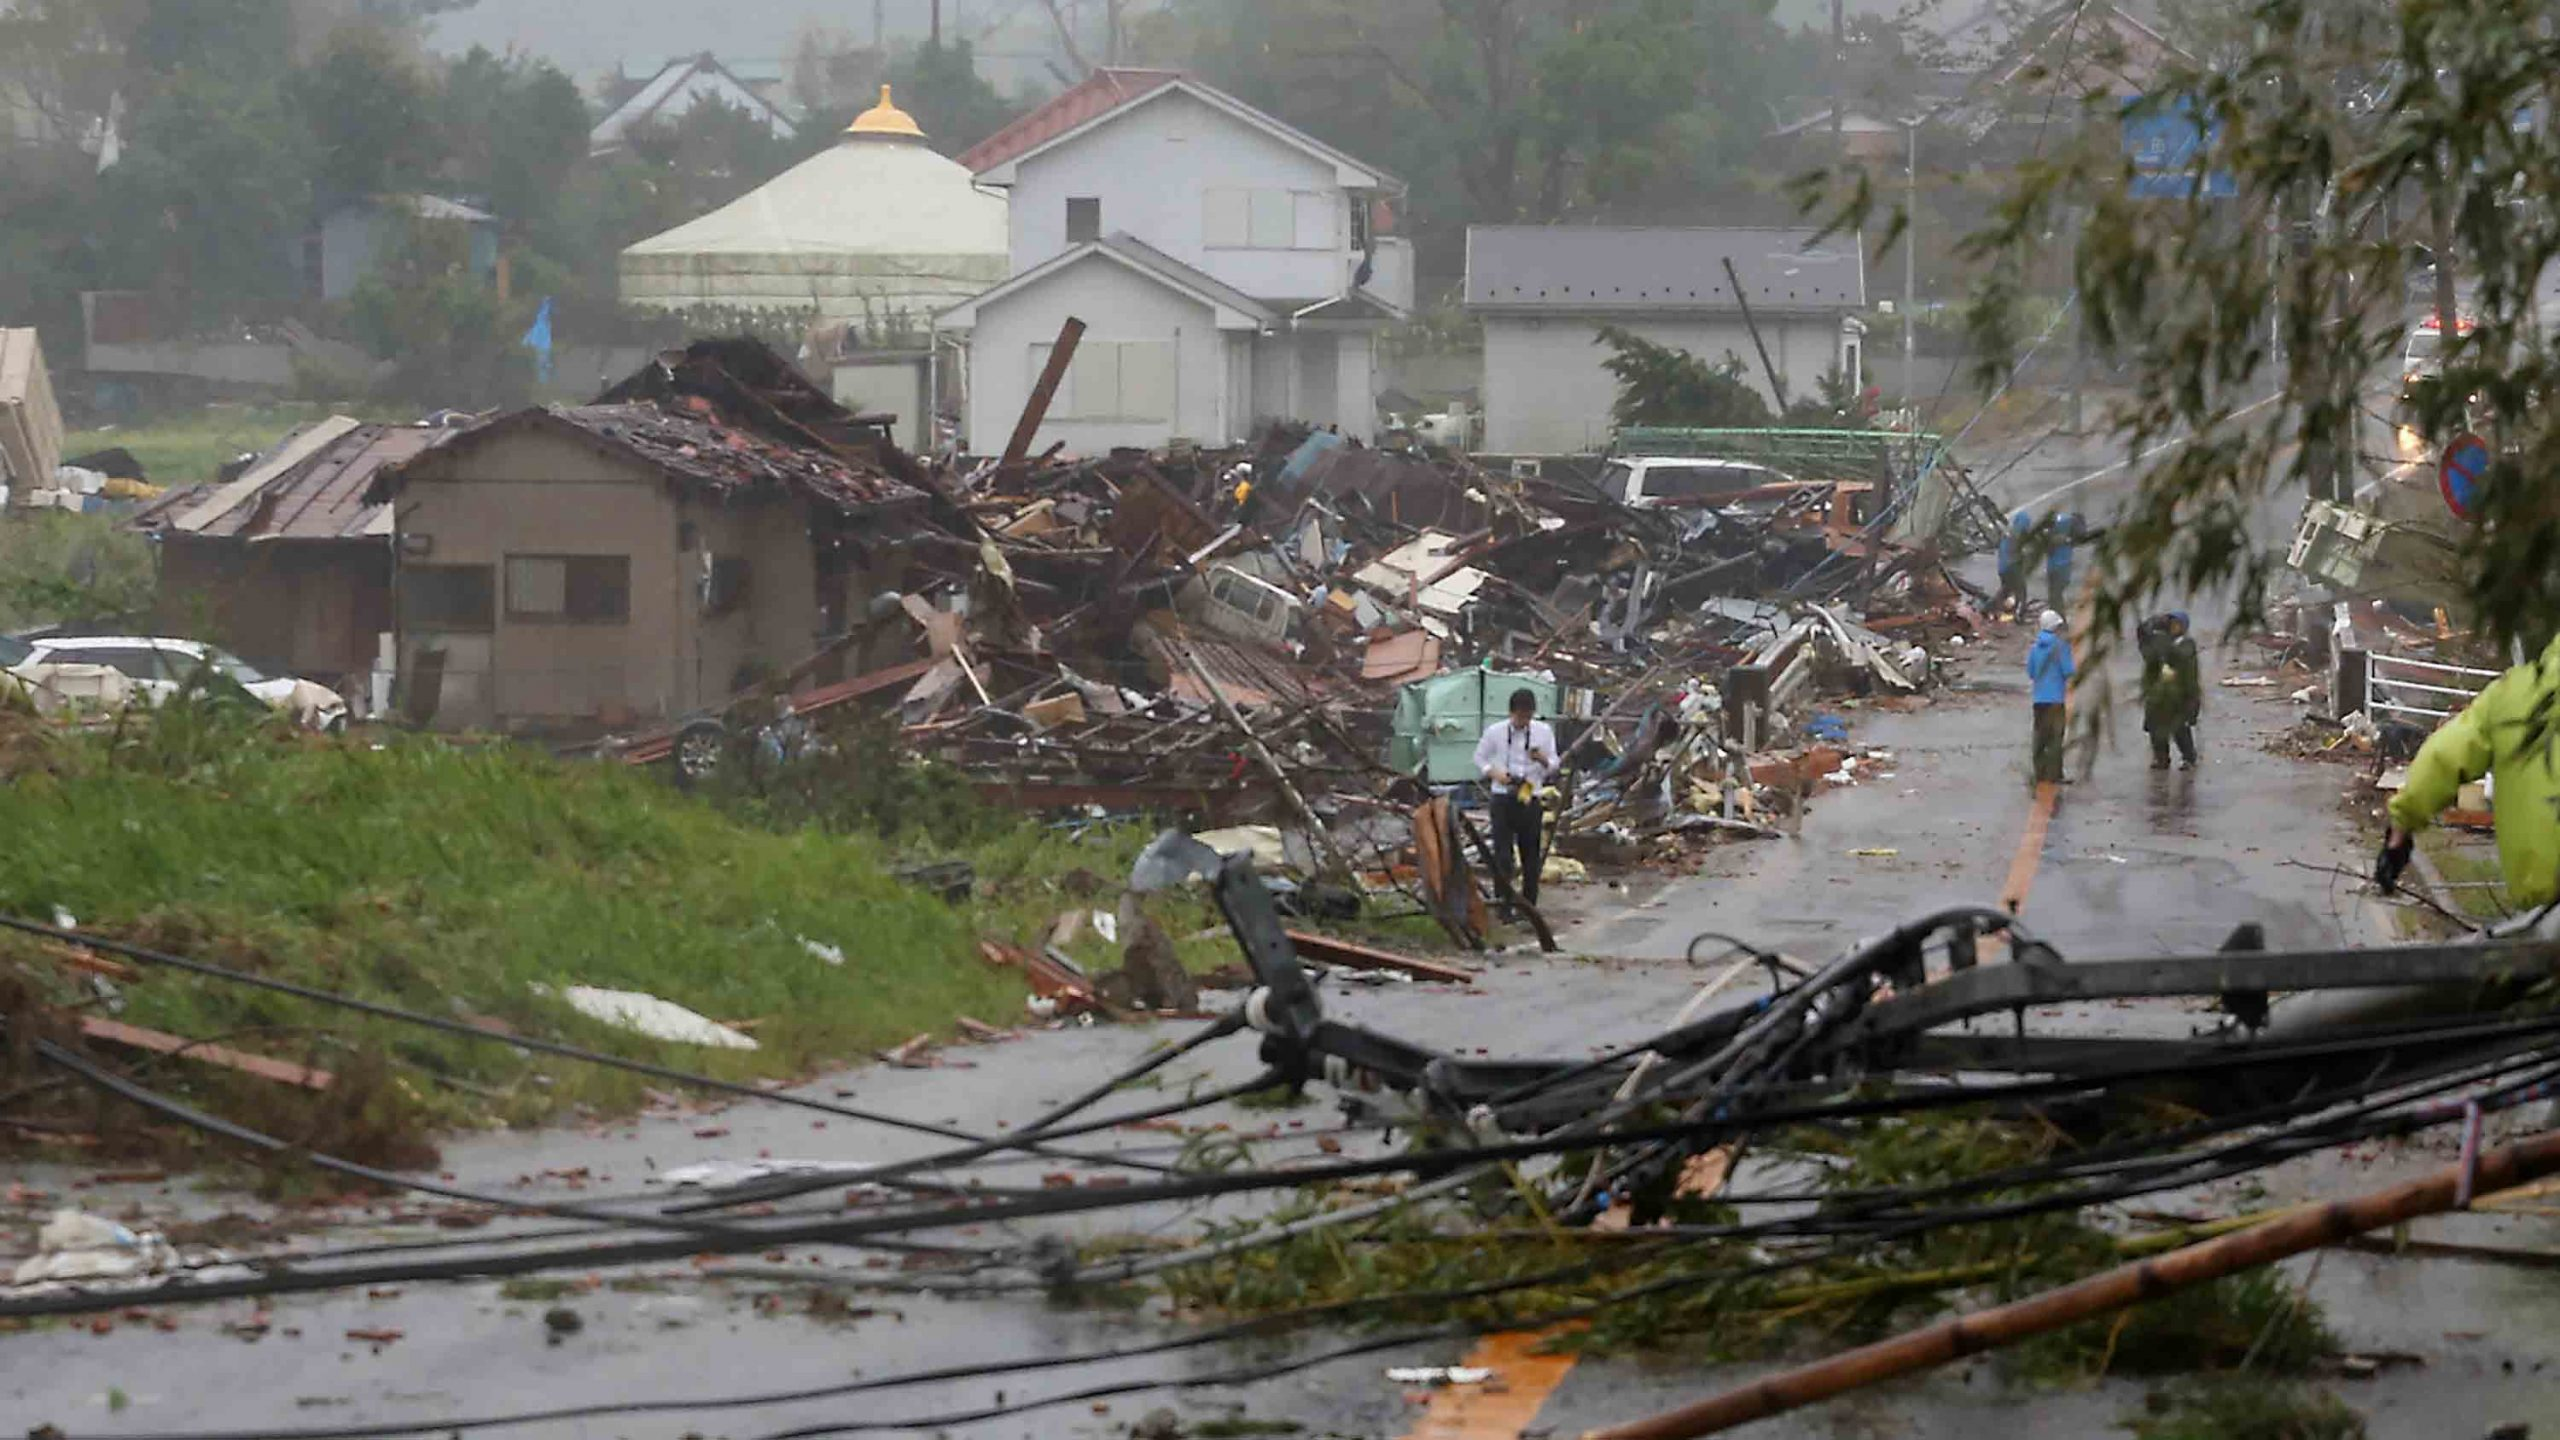 At least one dead and more than 60 injured by the arrival of Typhoon 'Hagibis' to Japan